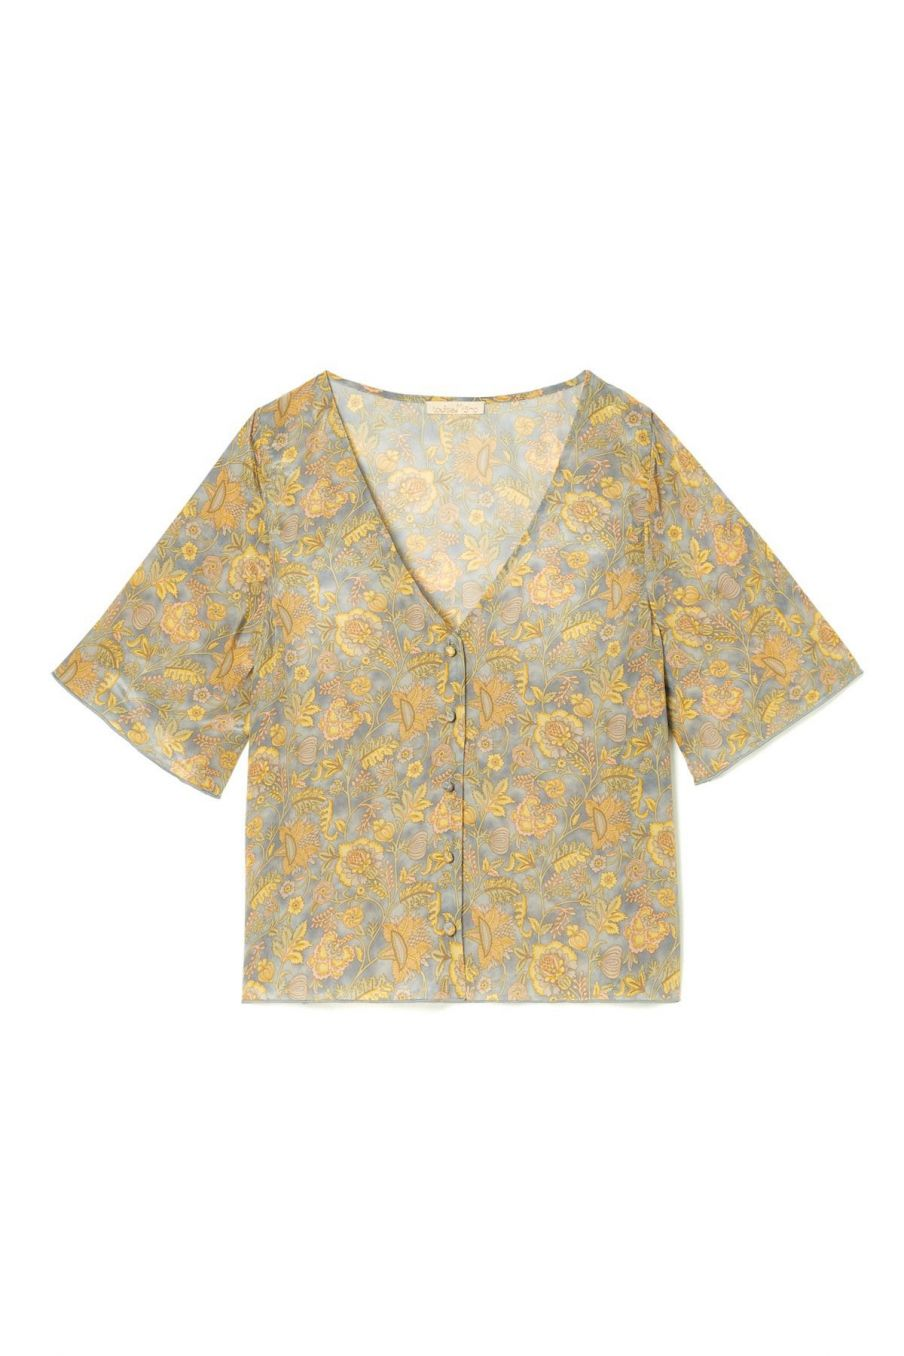 boheme chic vintage blouse femme goyava grey california flowers